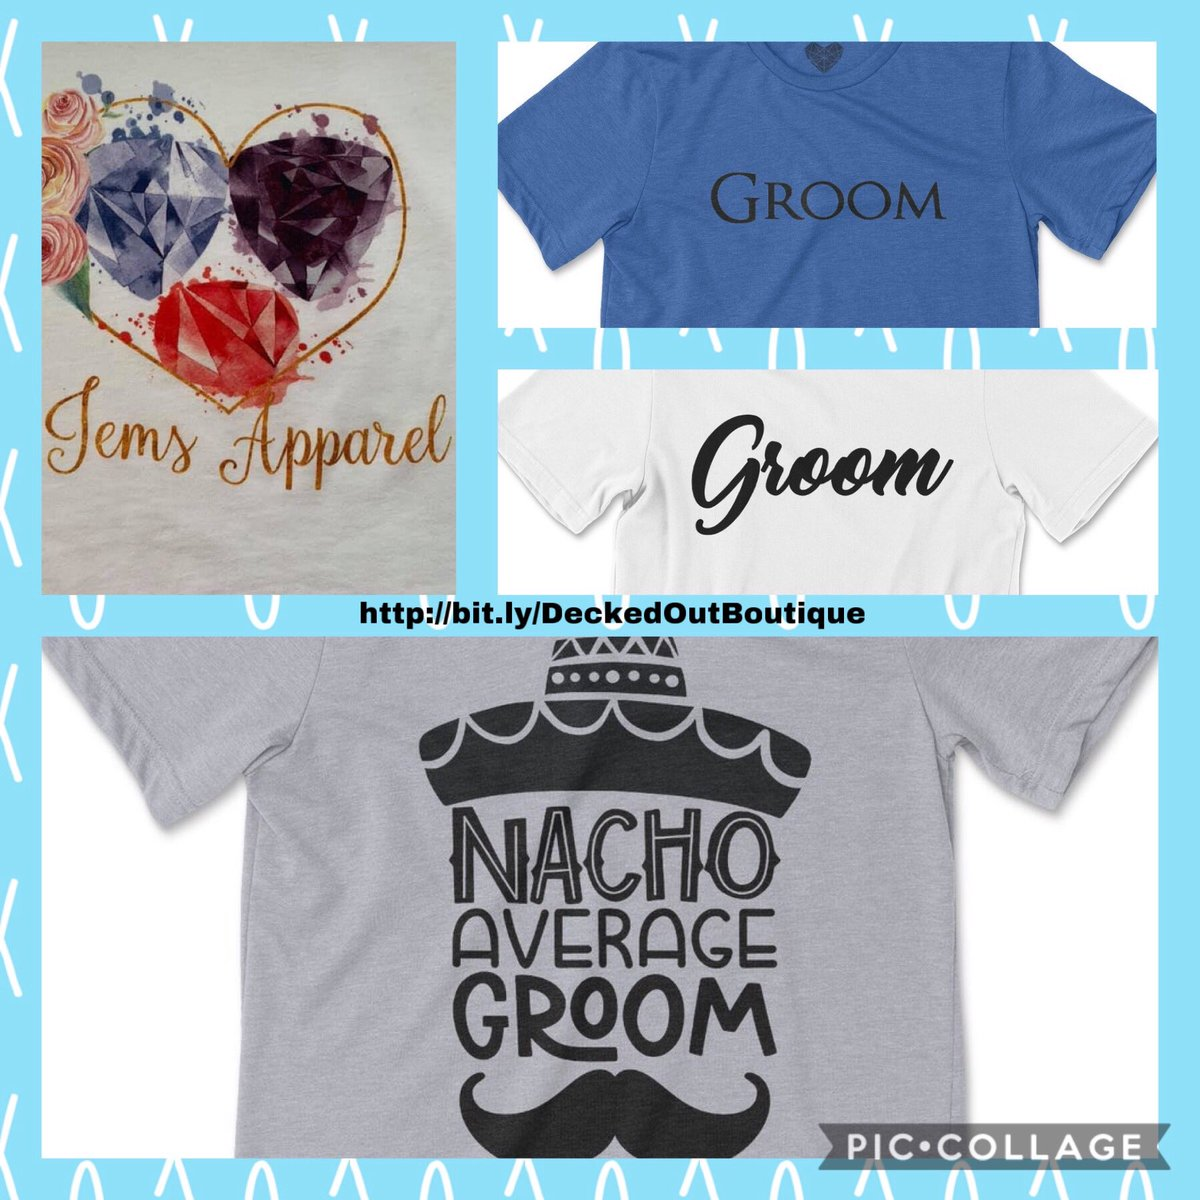 Wedding Collection ~ Groom  Printed on an ultra soft Heathered tee...Pre-shrunk...Unisex Fit...Designed Available in 15 colors...Sizes XS-2XL http://bit.ly/DeckedOutBoutique … #Mensfashion #unisexfashion #weddingcollection #groom #graphictee #shopping #shoppingonline #giftideas